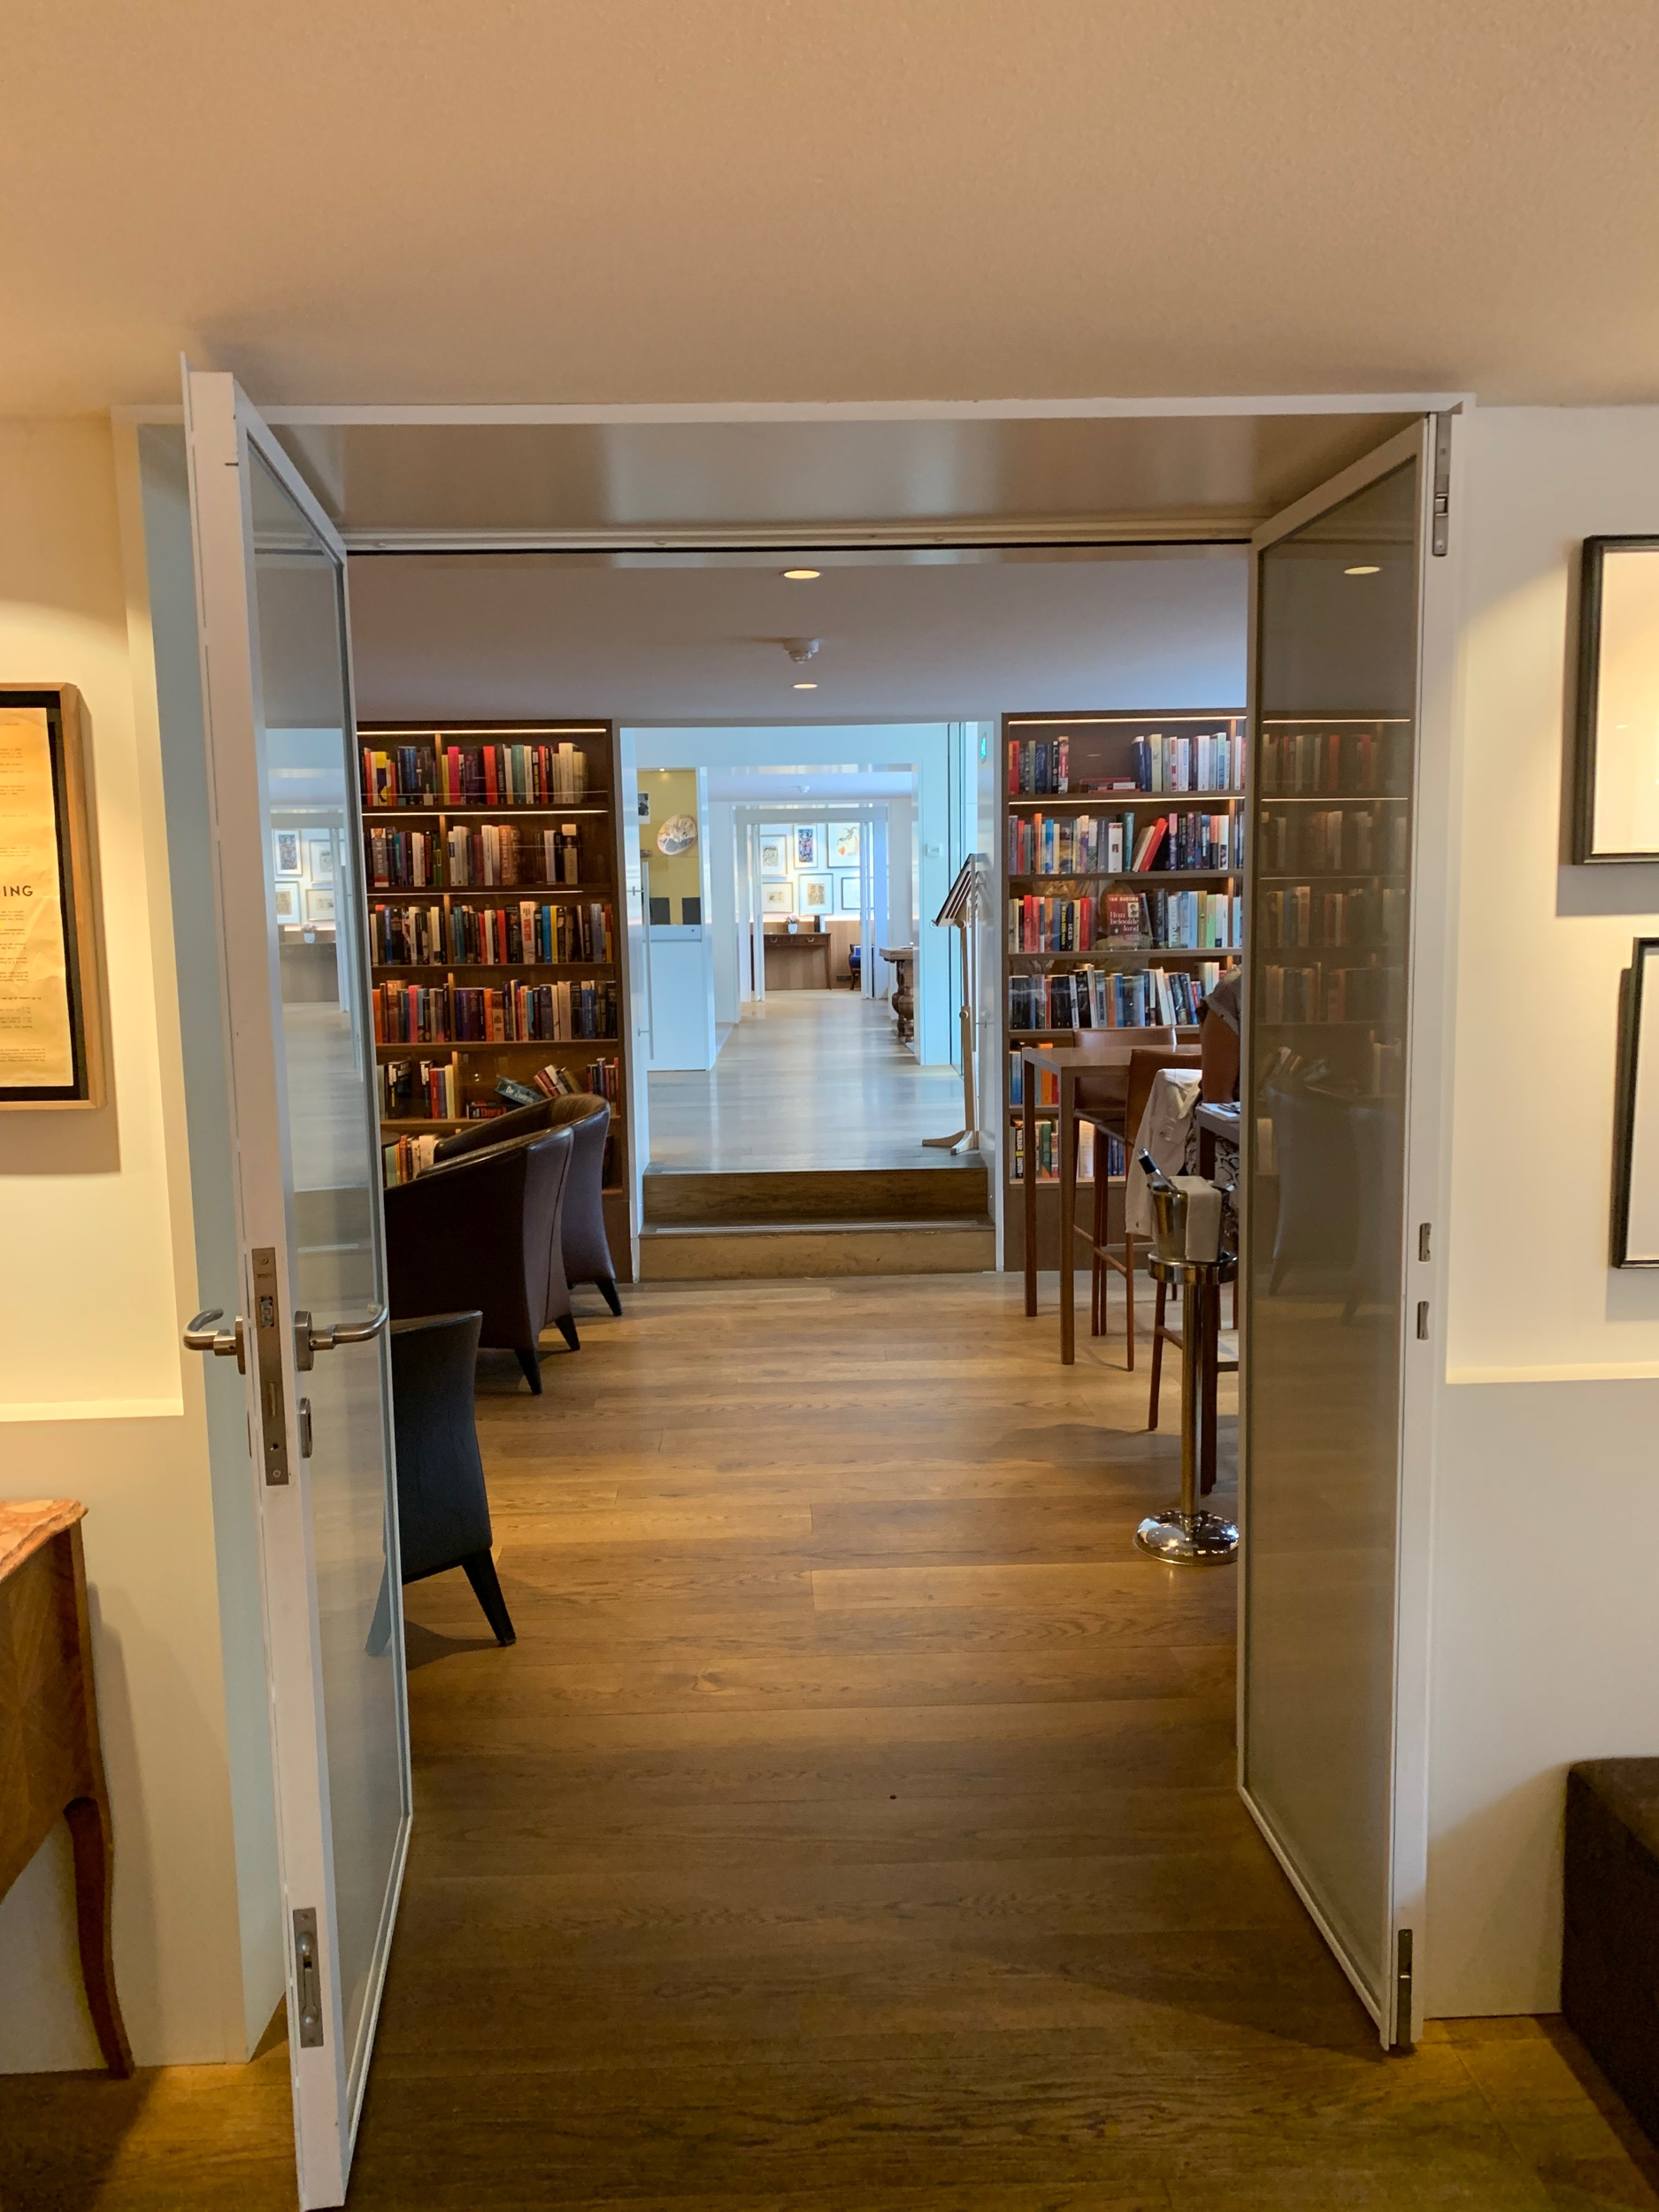 The hotel library!